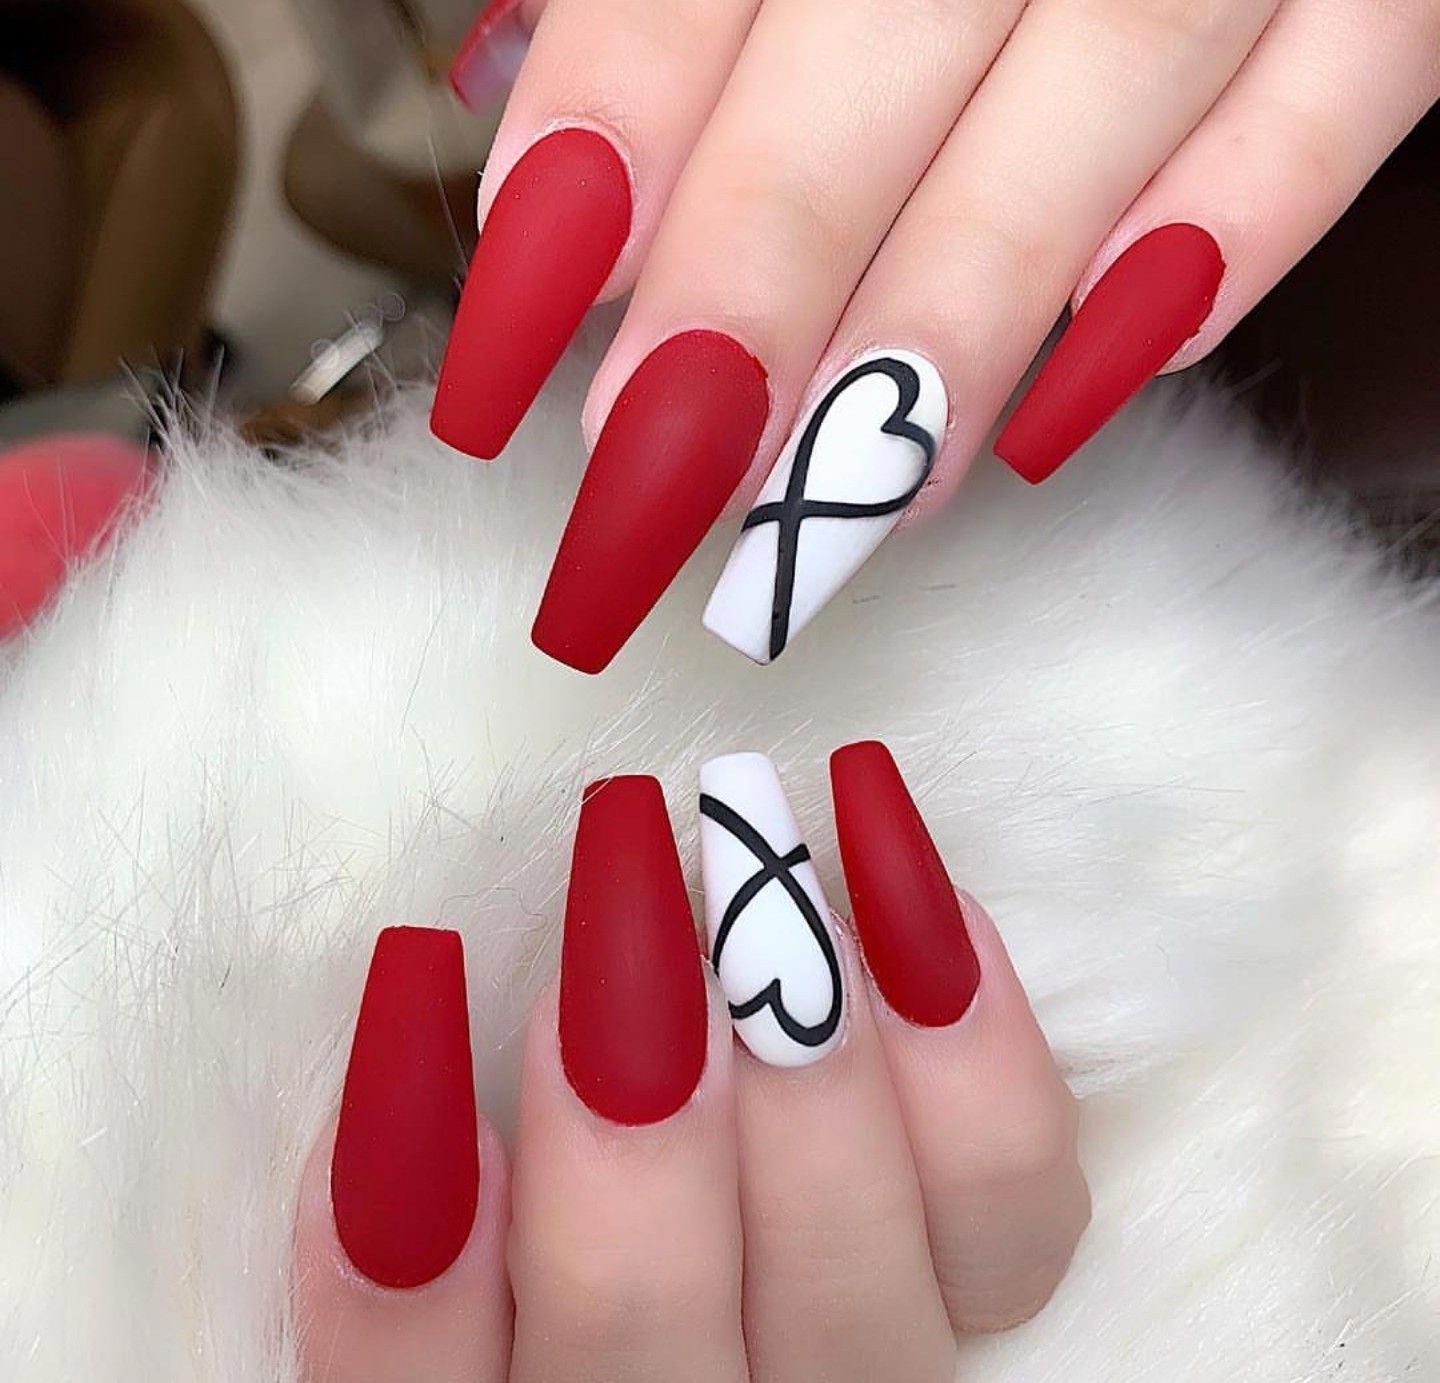 Makeup And Age In 2020 Red And White Nails Red Acrylic Nails